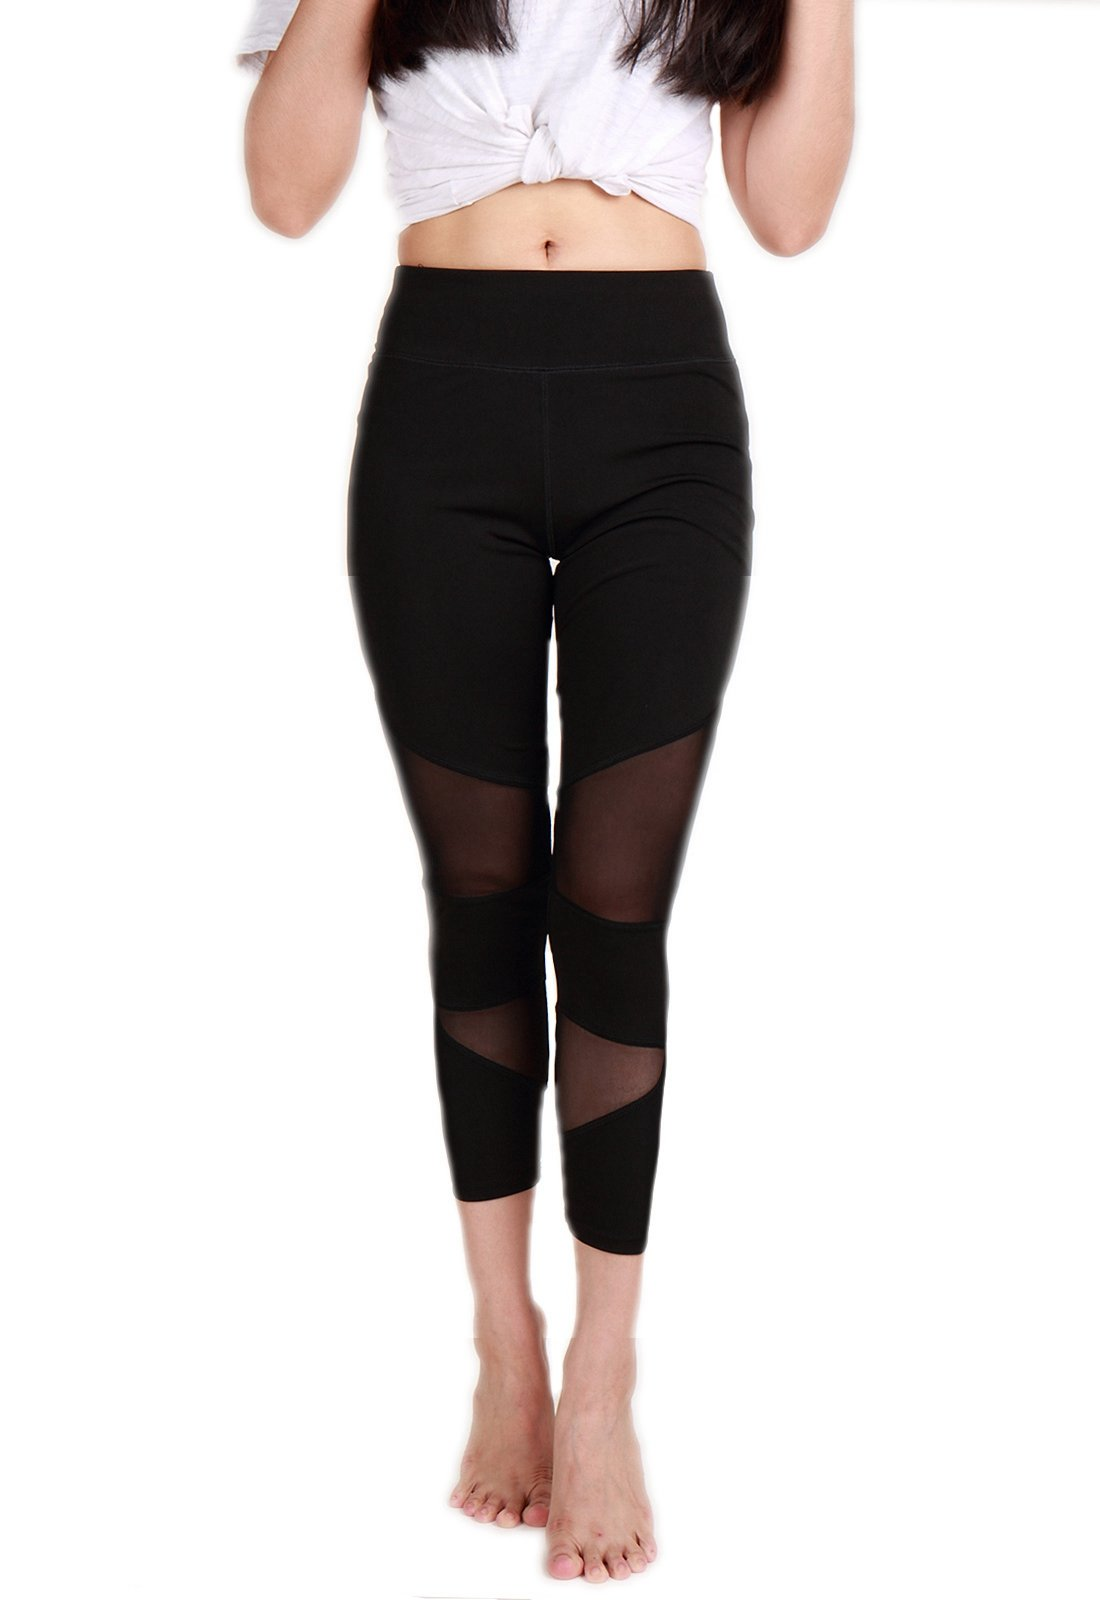 CFR Sexy Mesh Yoga Pants Women's Fitness Capri Sport Leggings Tights For Workout Activities (Medium, Black - Style 2)